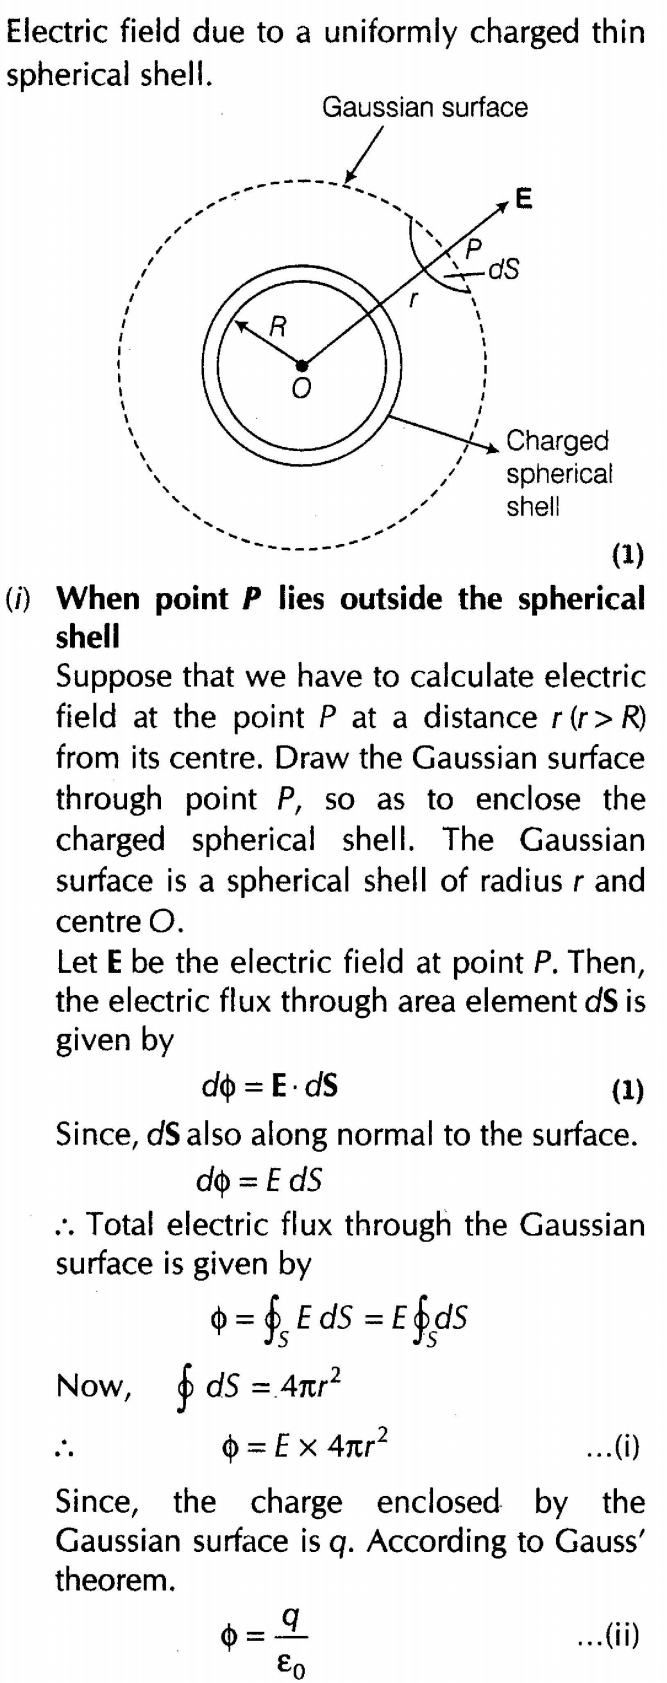 important-questions-for-class-12-physics-cbse-gausss-law-q-32jpg_Page1 #NCERT #NCERTsolutions #CBSE #CBSEclass12 #CBSEclass12Physics